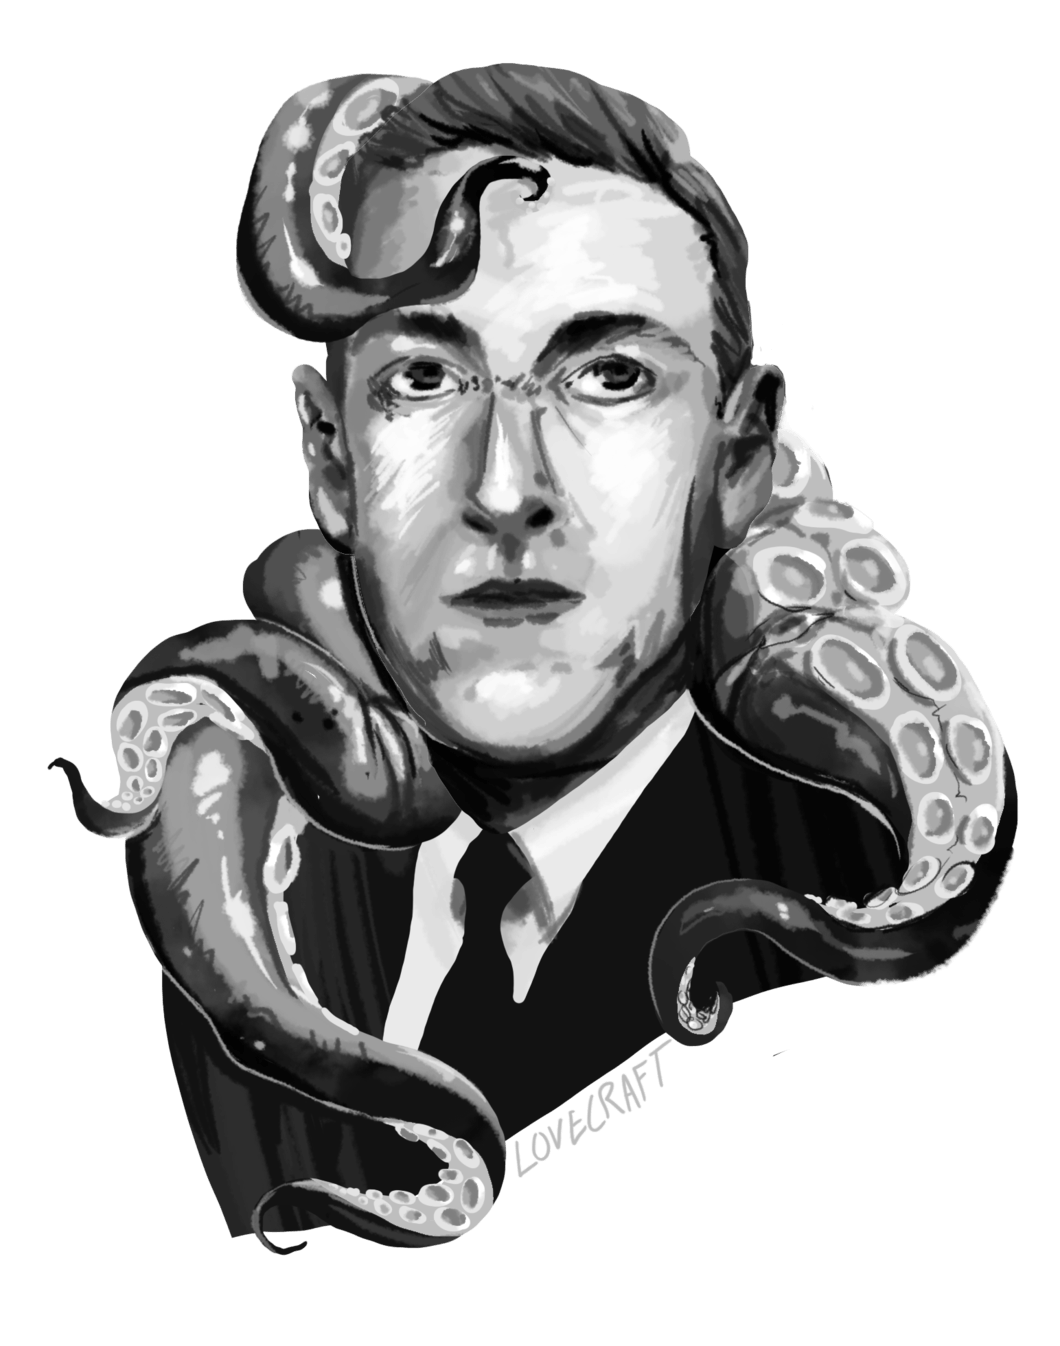 Lovecraft y su Conexión con Chile  - La Ruta Secreta - Emisor Podcasting